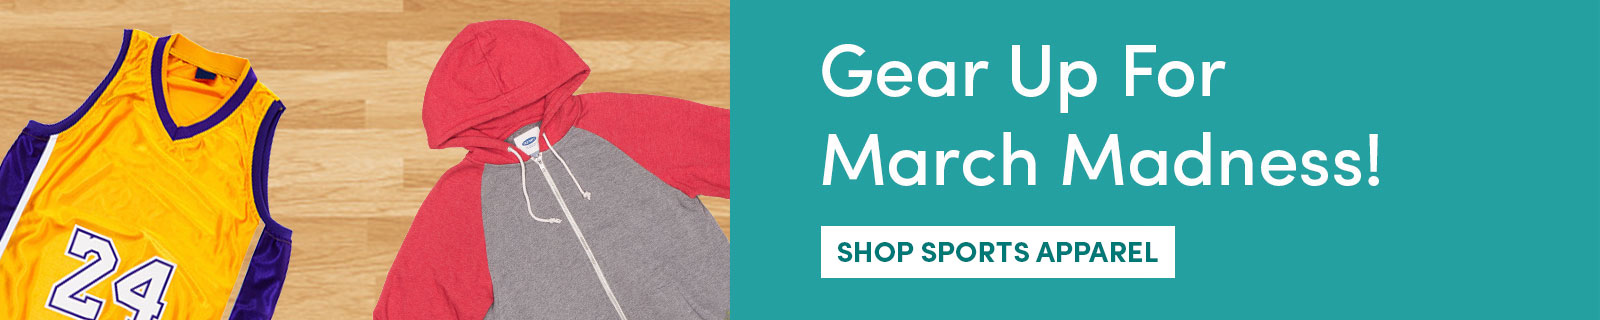 Gear Up For March Madness! [Shop Sports Apparel]